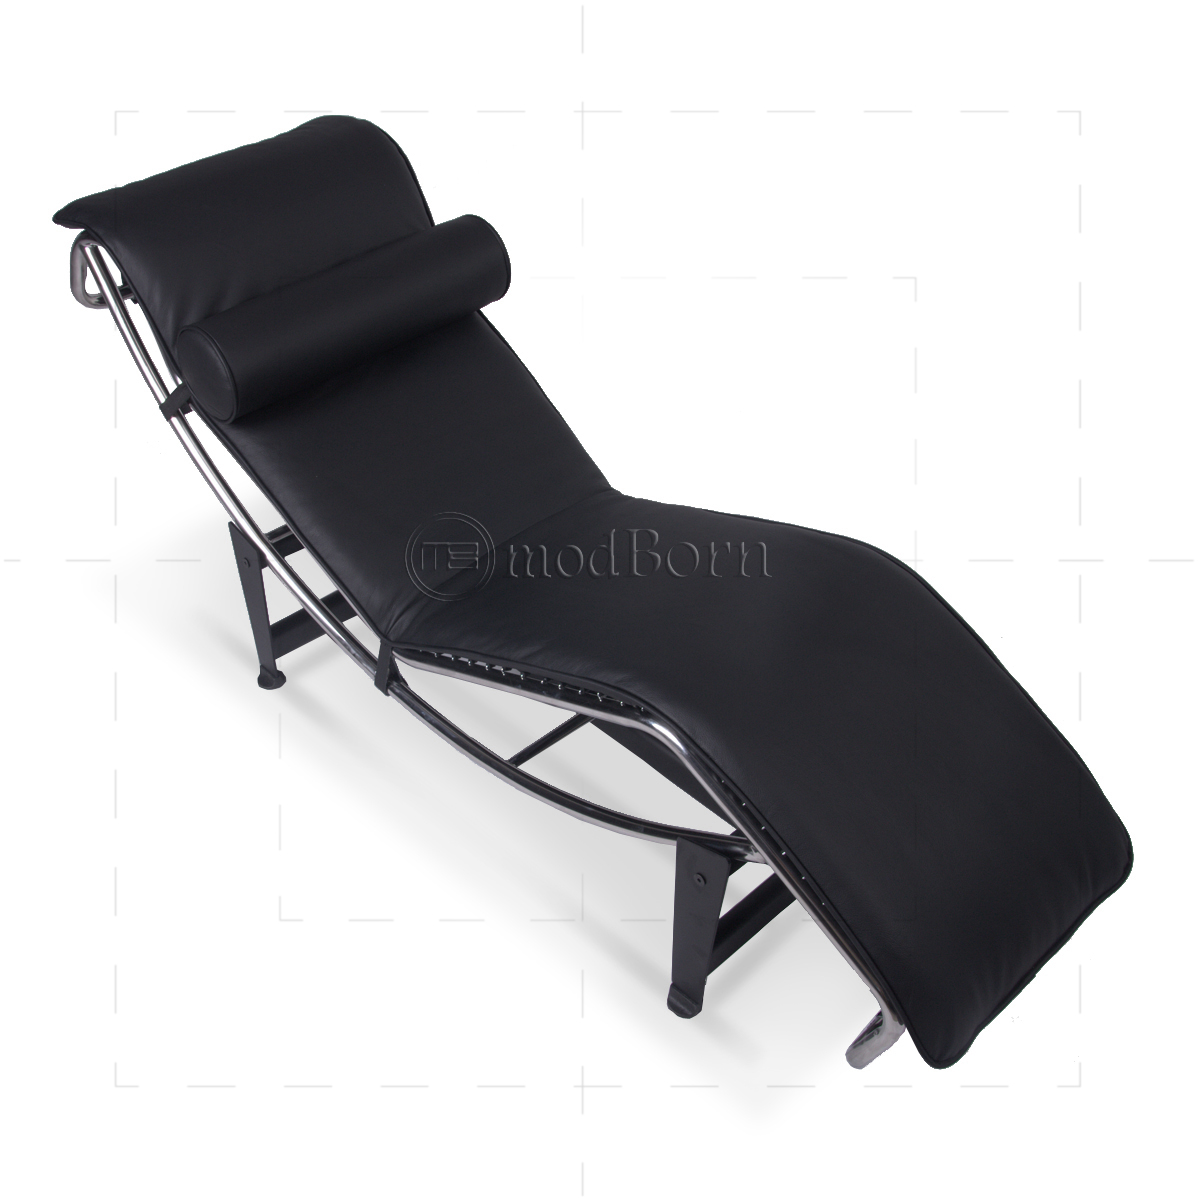 Le corbusier style lc4 chaise longue black leather replica for Black leather chaise